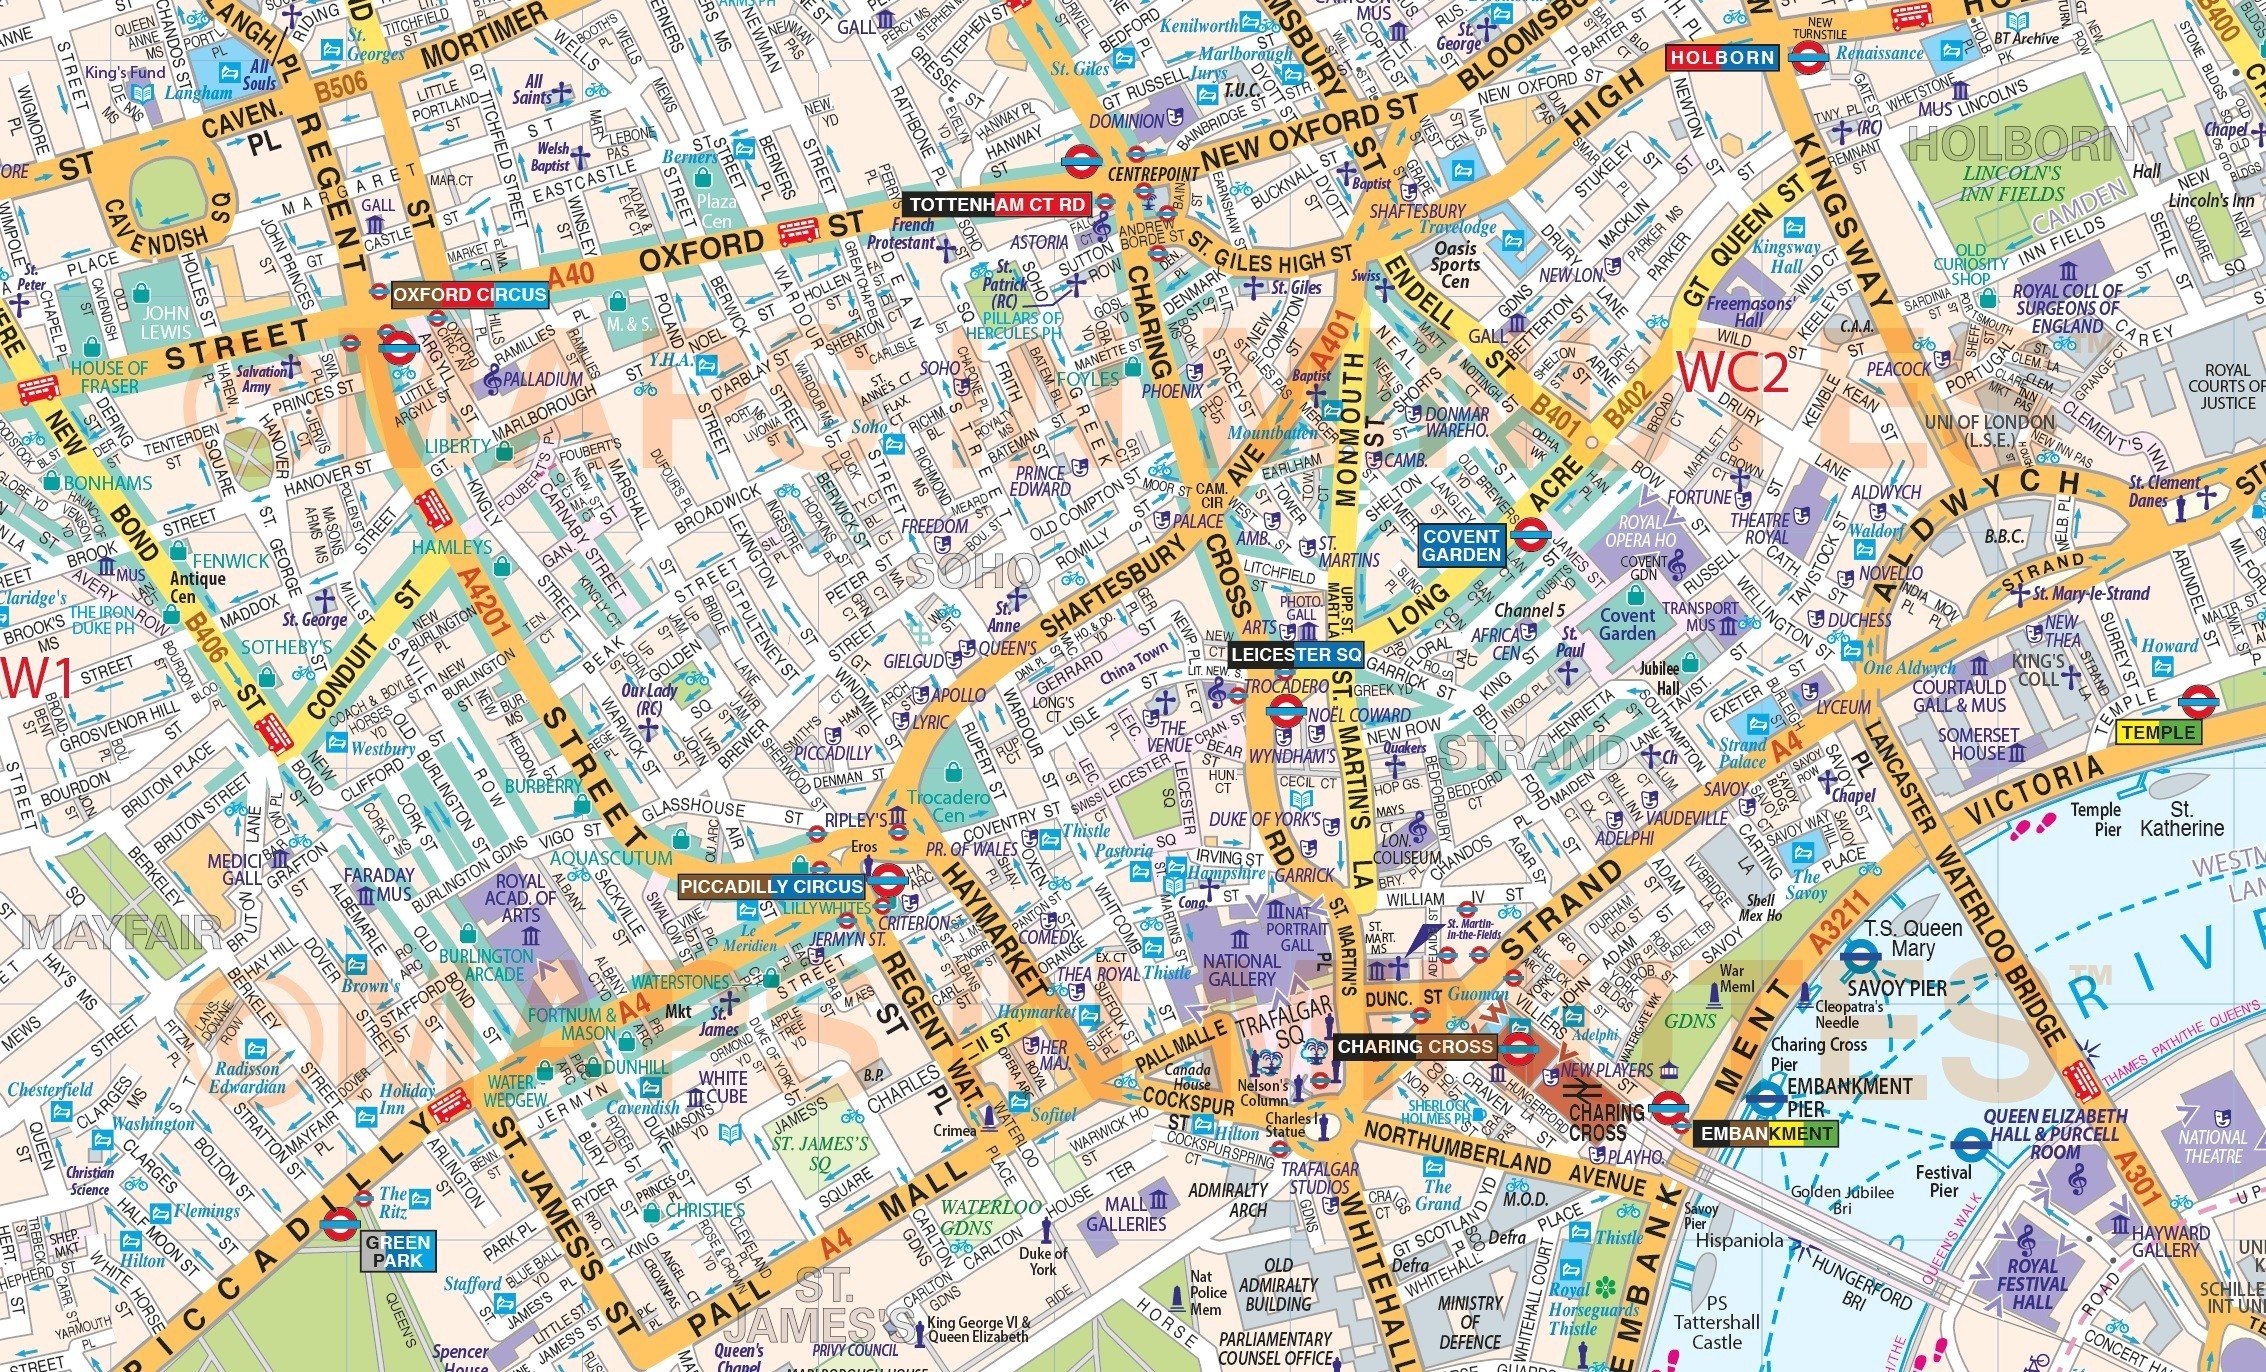 Printable London Street Map Download Of Central Major Tourist 4 - Printable Street Map Of London